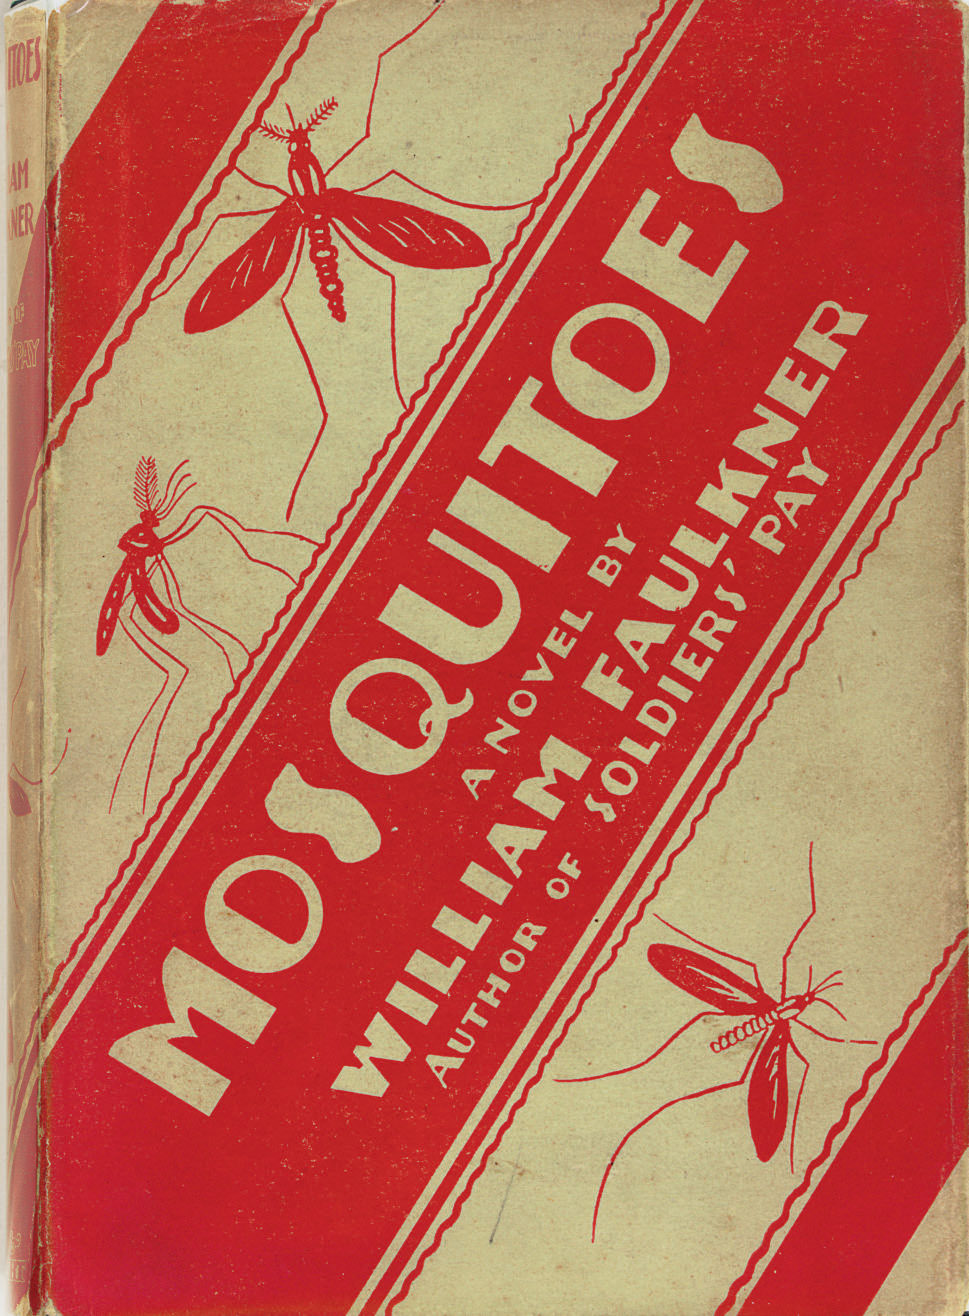 FAULKNER, William. Mosquitoes.